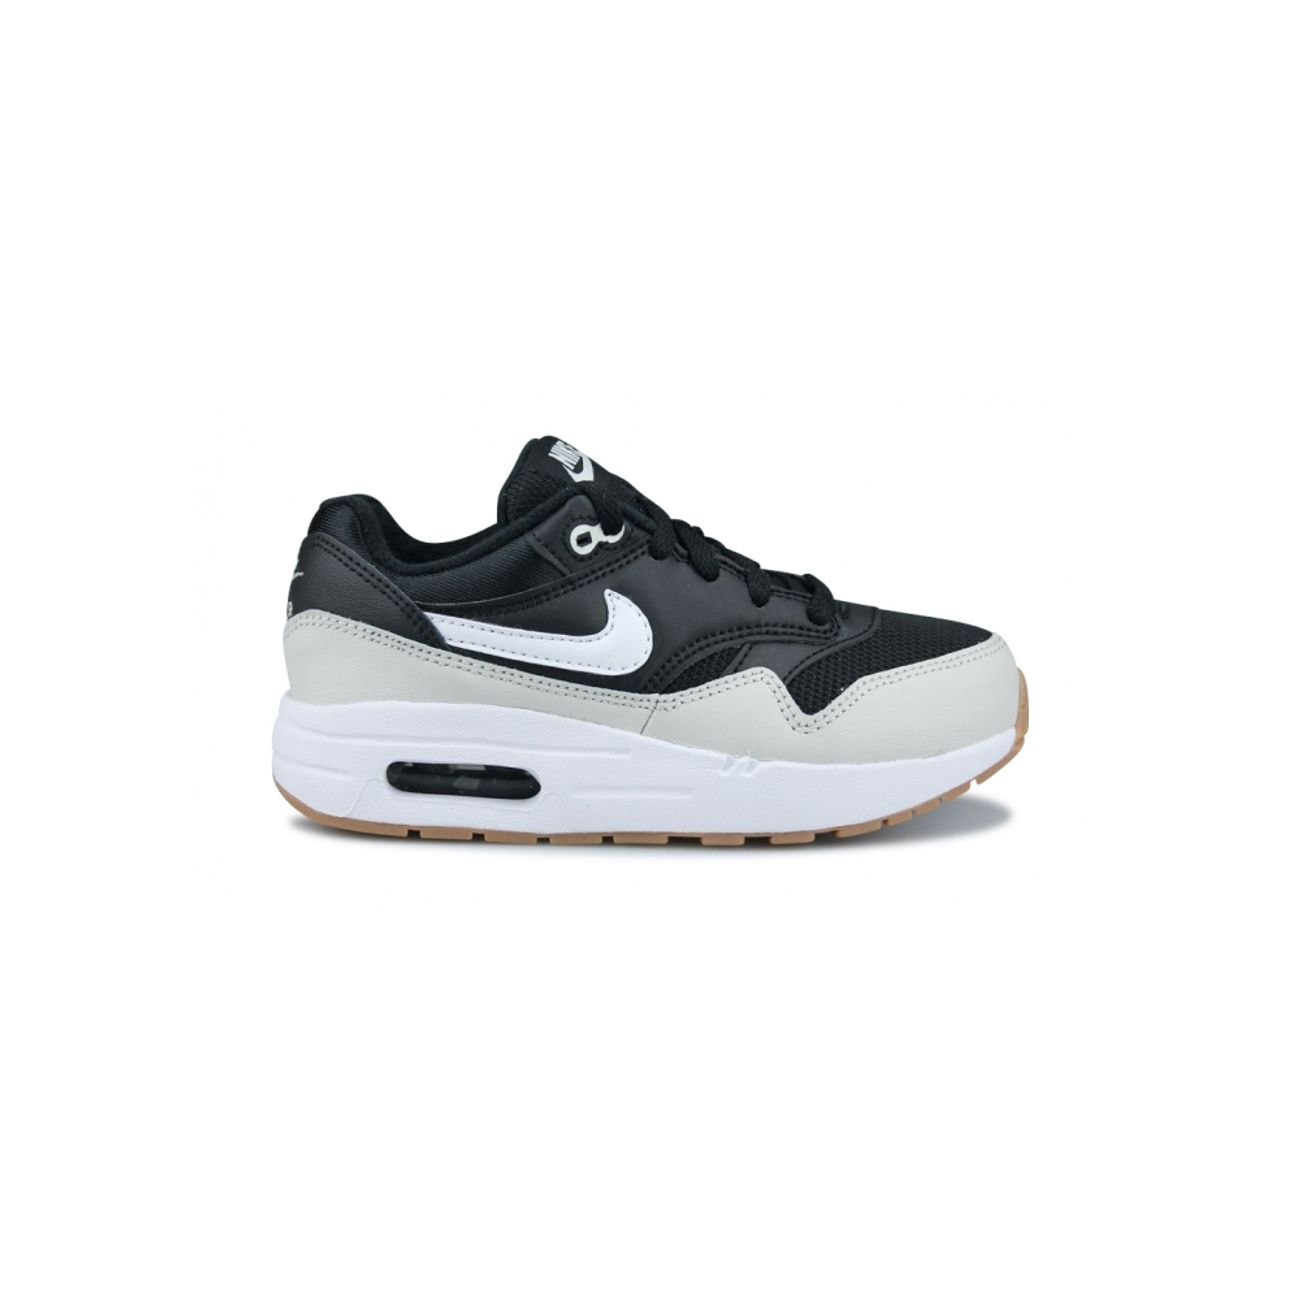 on sale 8793f a64b7 Mode- Lifestyle garçon NIKE Basket Nike Air Max 1 Enfant Noir 807603-011 ...